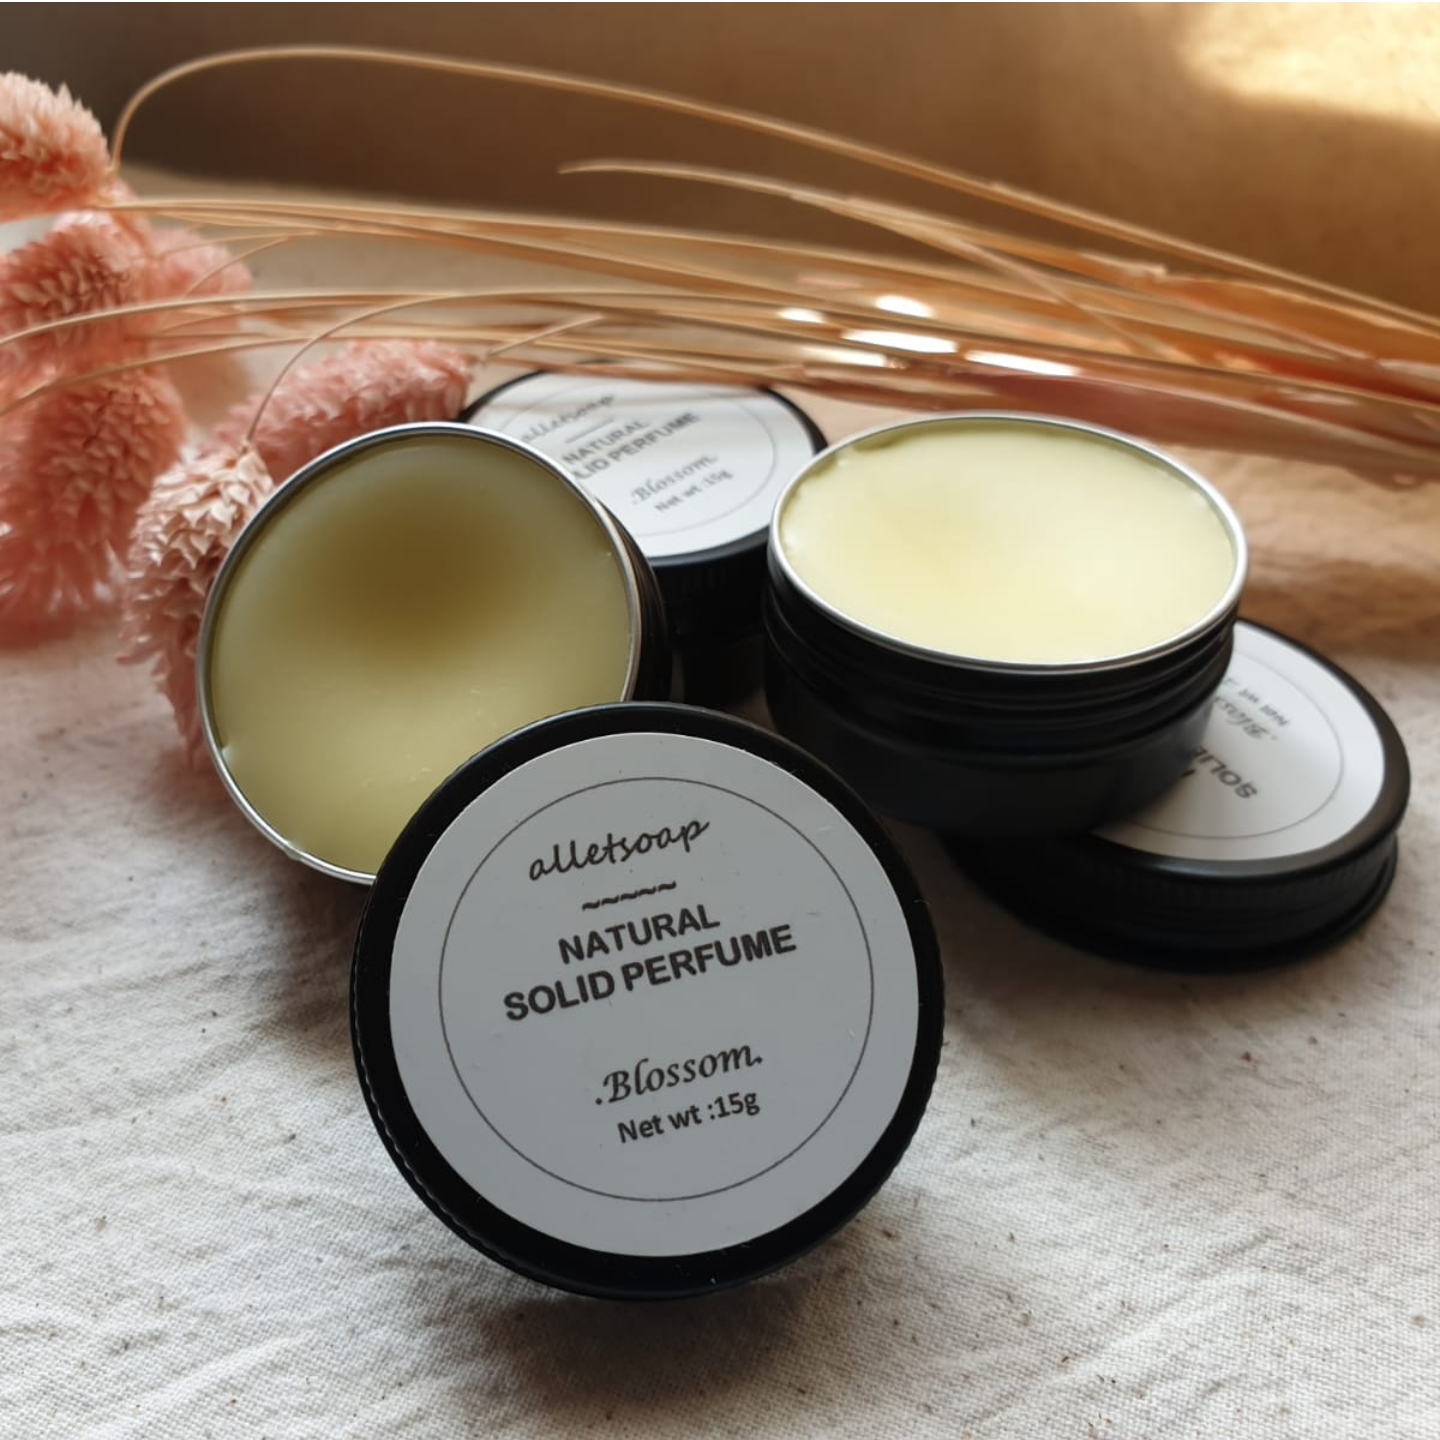 Natural Solid Perfume - Blossom